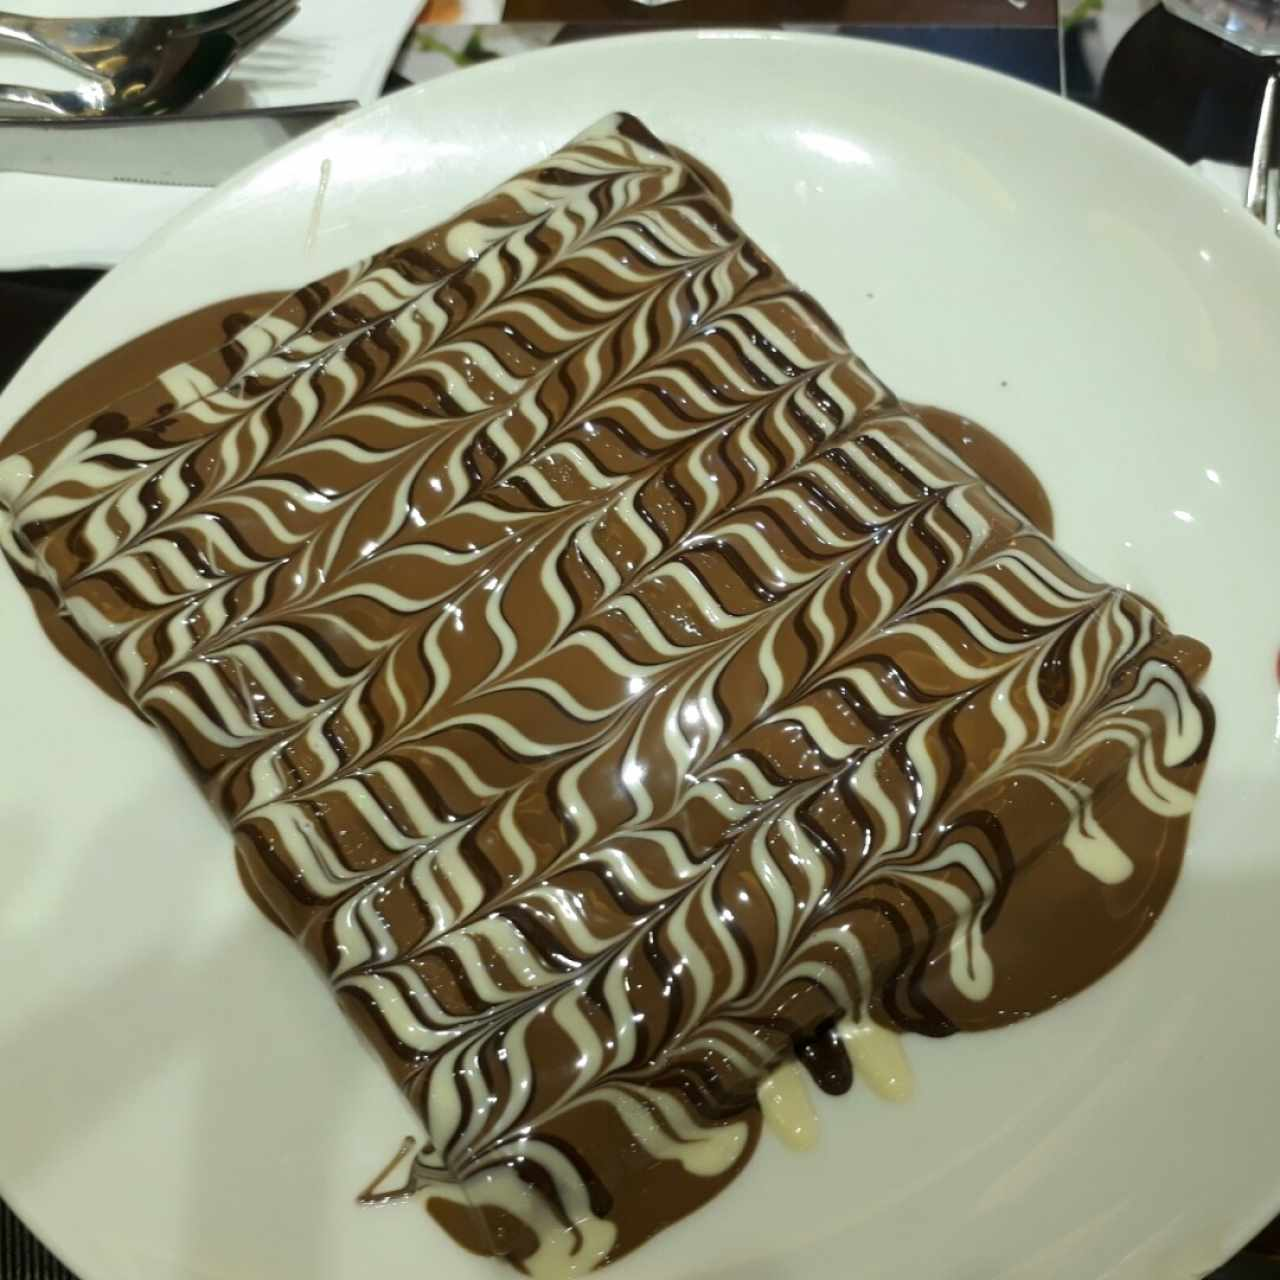 crepe con brownie